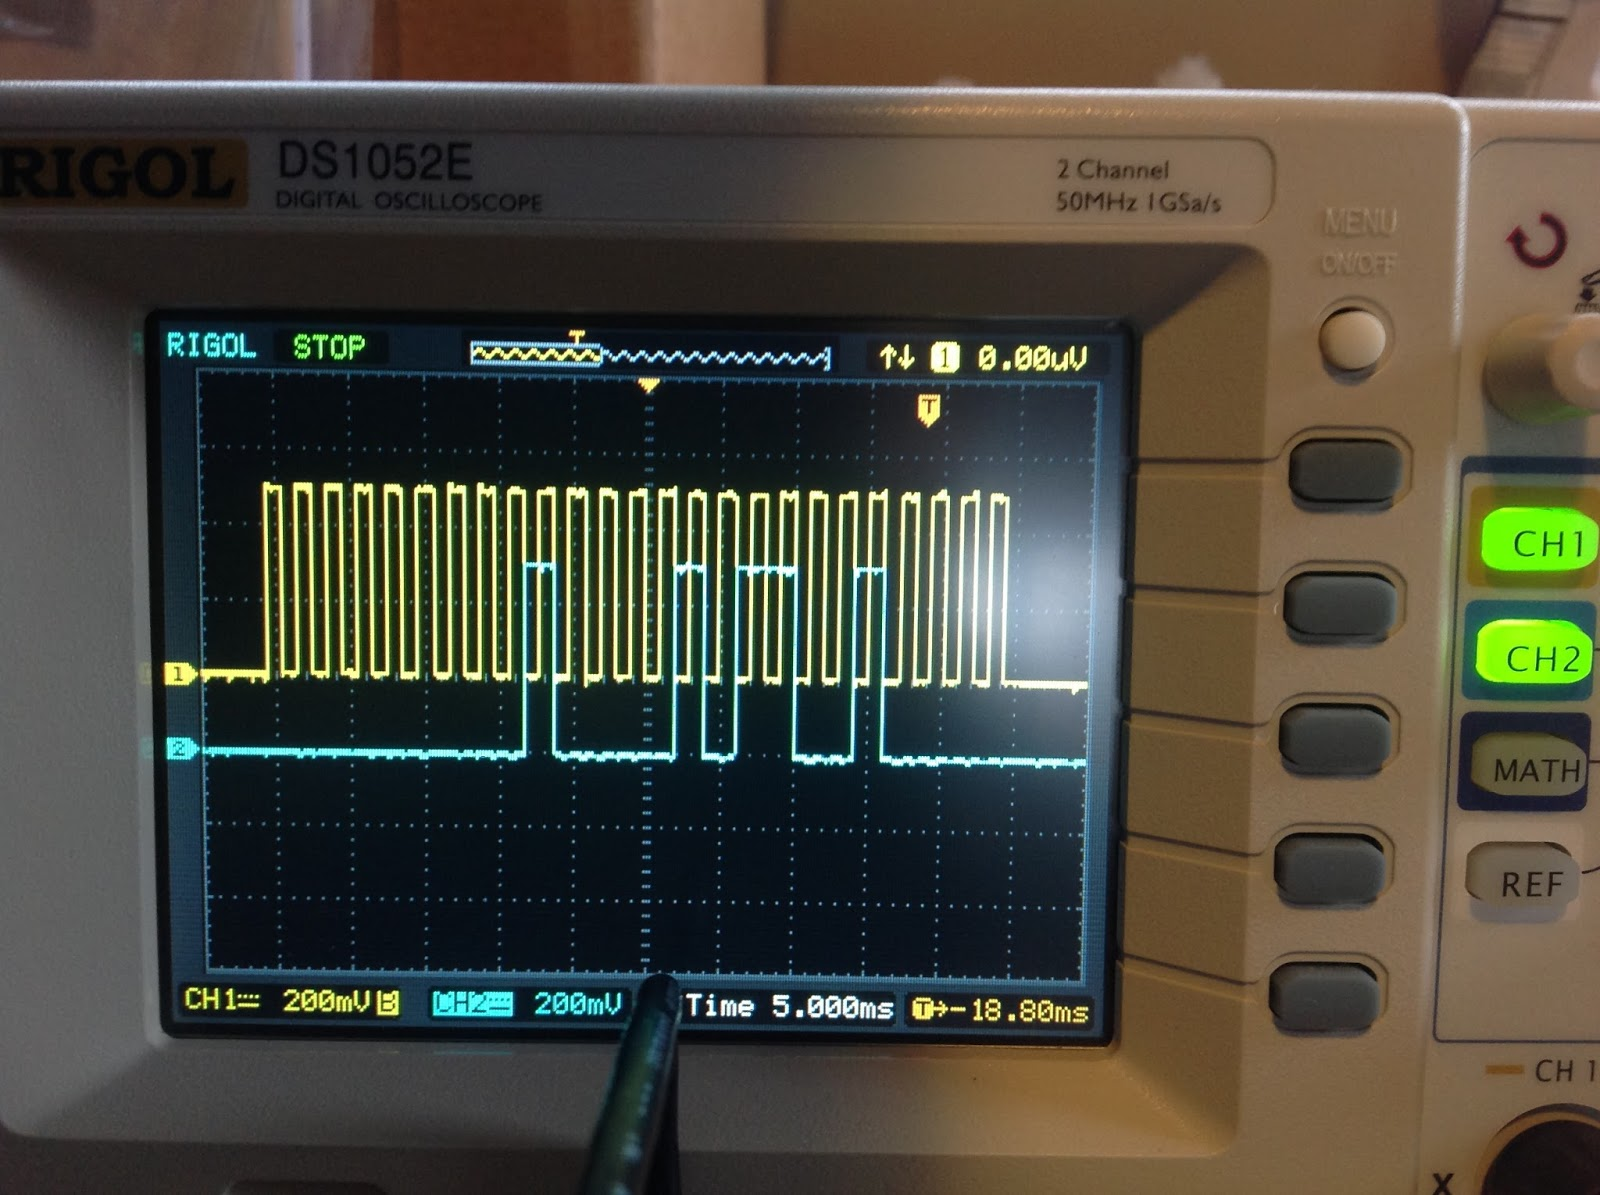 Geek Like Me, Too: SPI Communications with the Arduino Uno